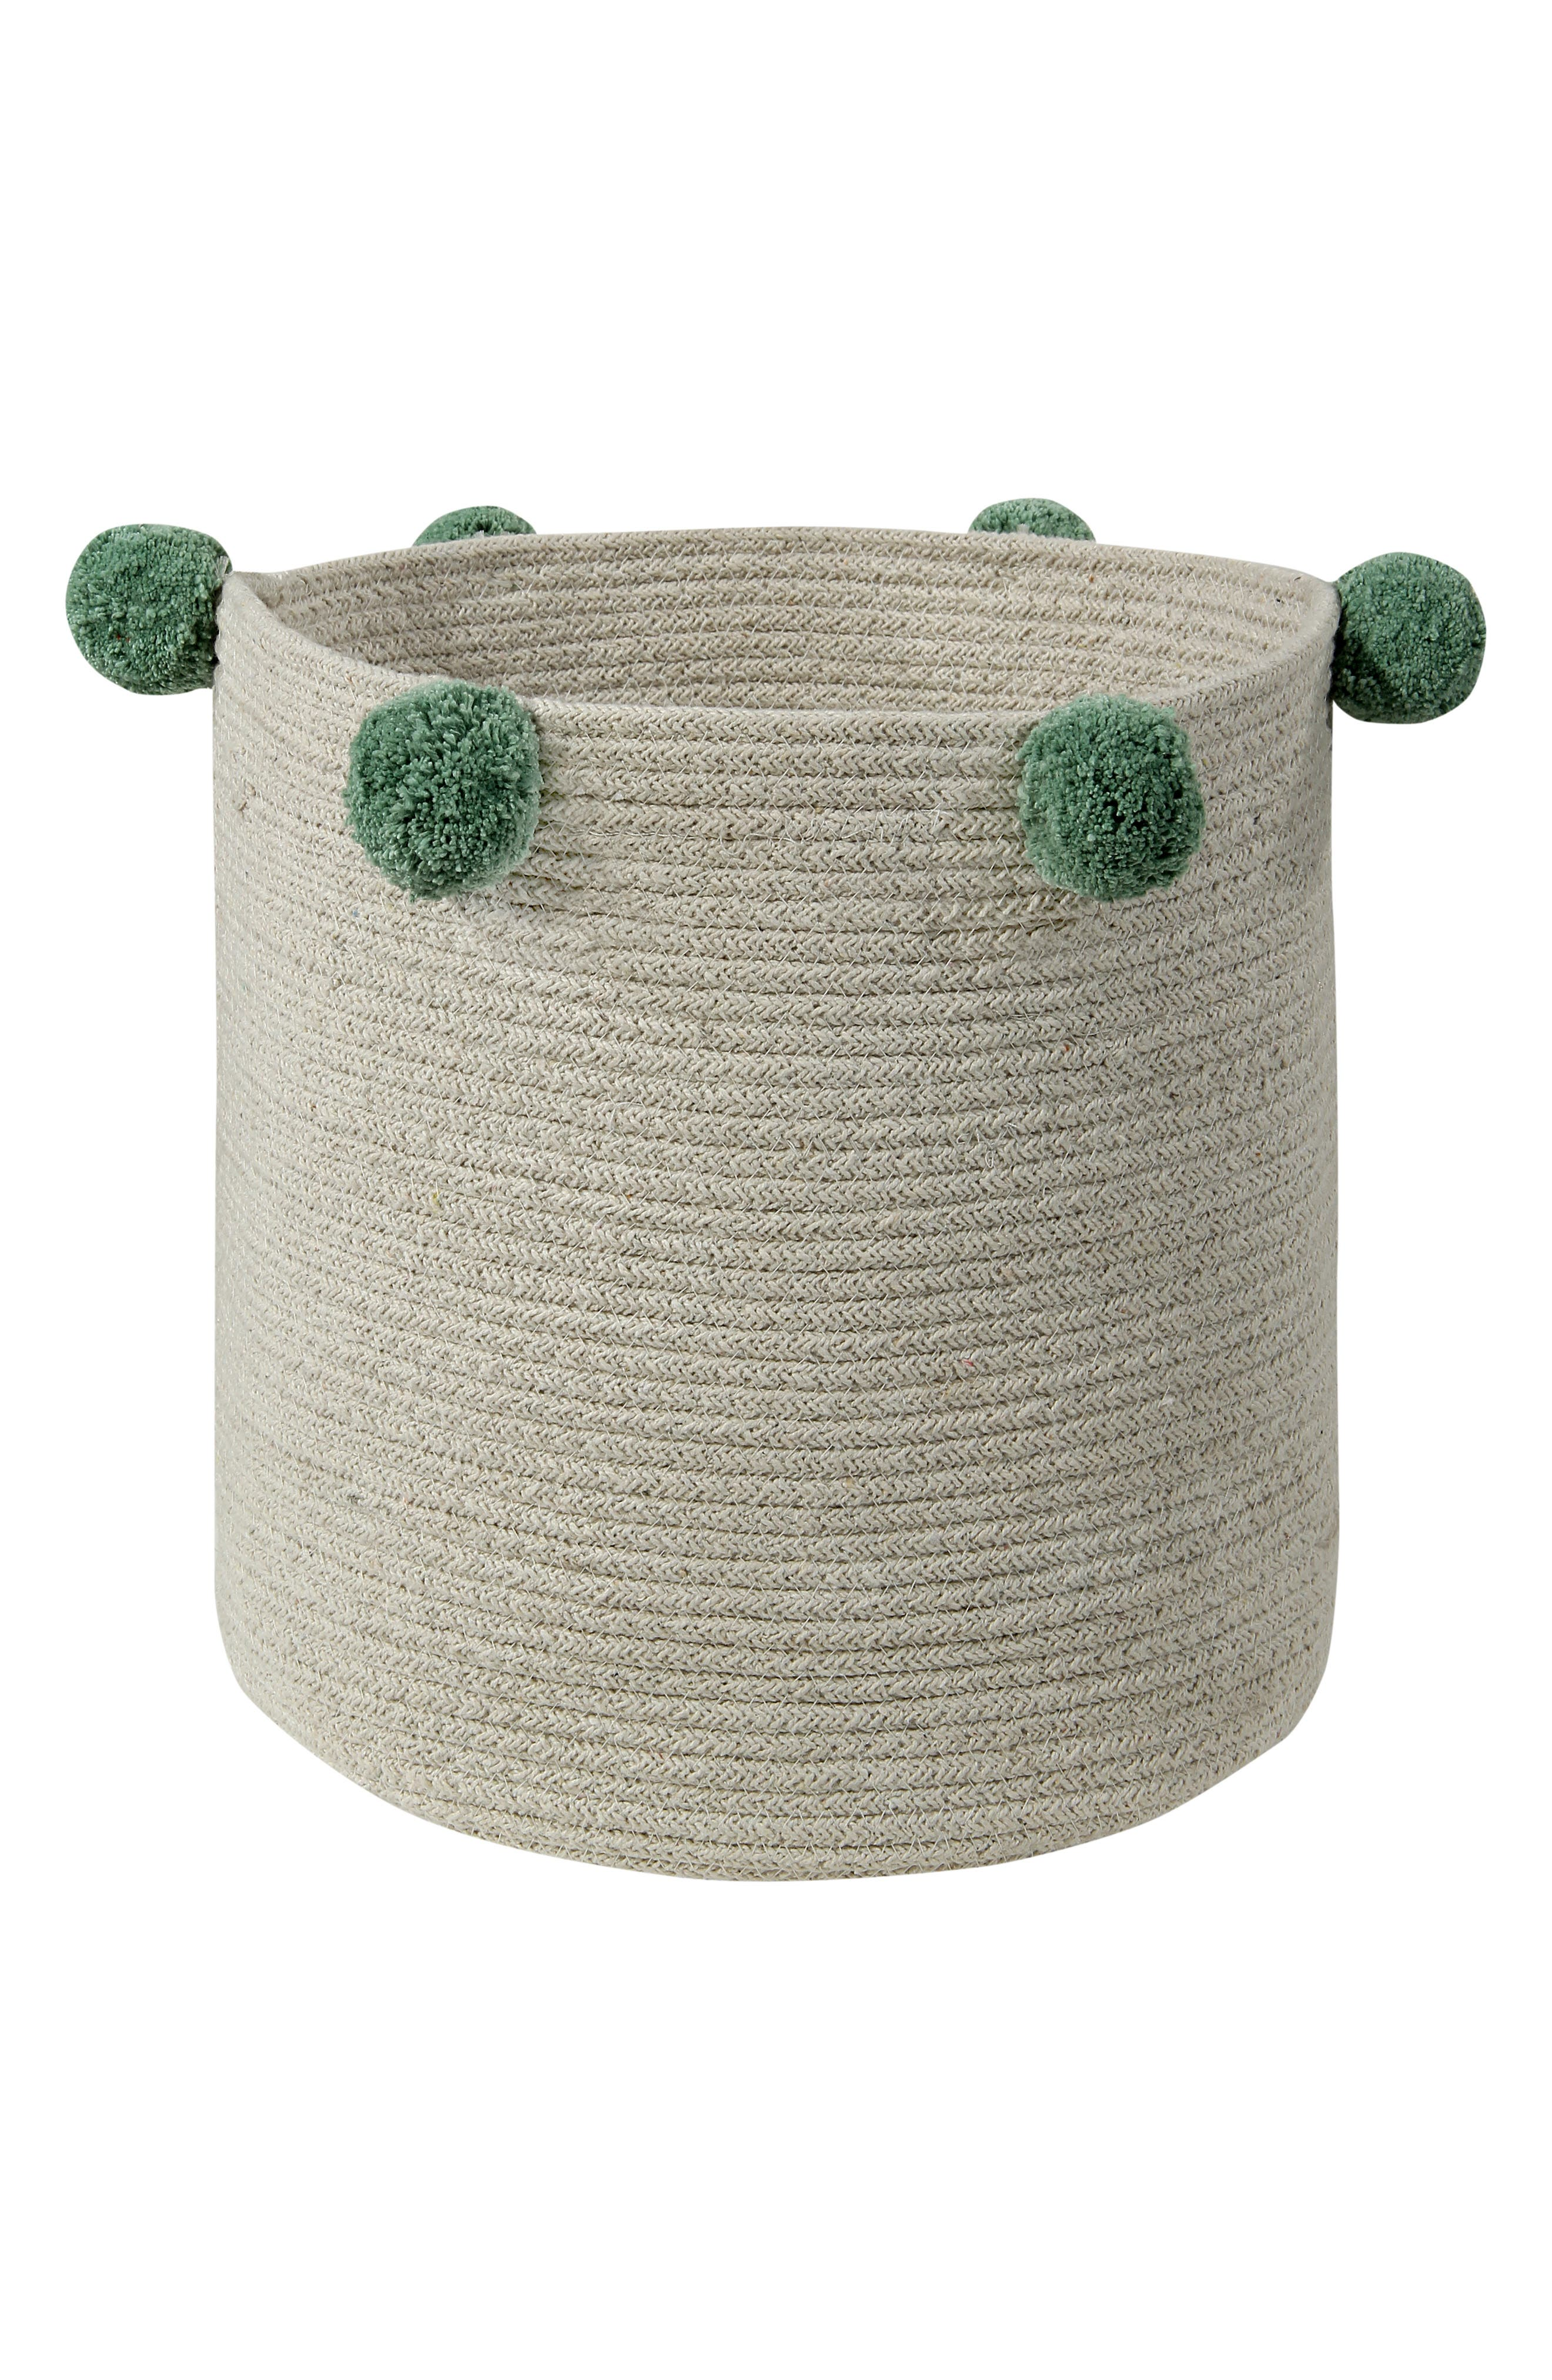 Pompom trim adds a fun flourish to a handmade basket that provides ideal toy storage while making any nursery extra charming. Style Name: Lorena Canals Bubbly Basket. Style Number: 5869423. Available in stores.